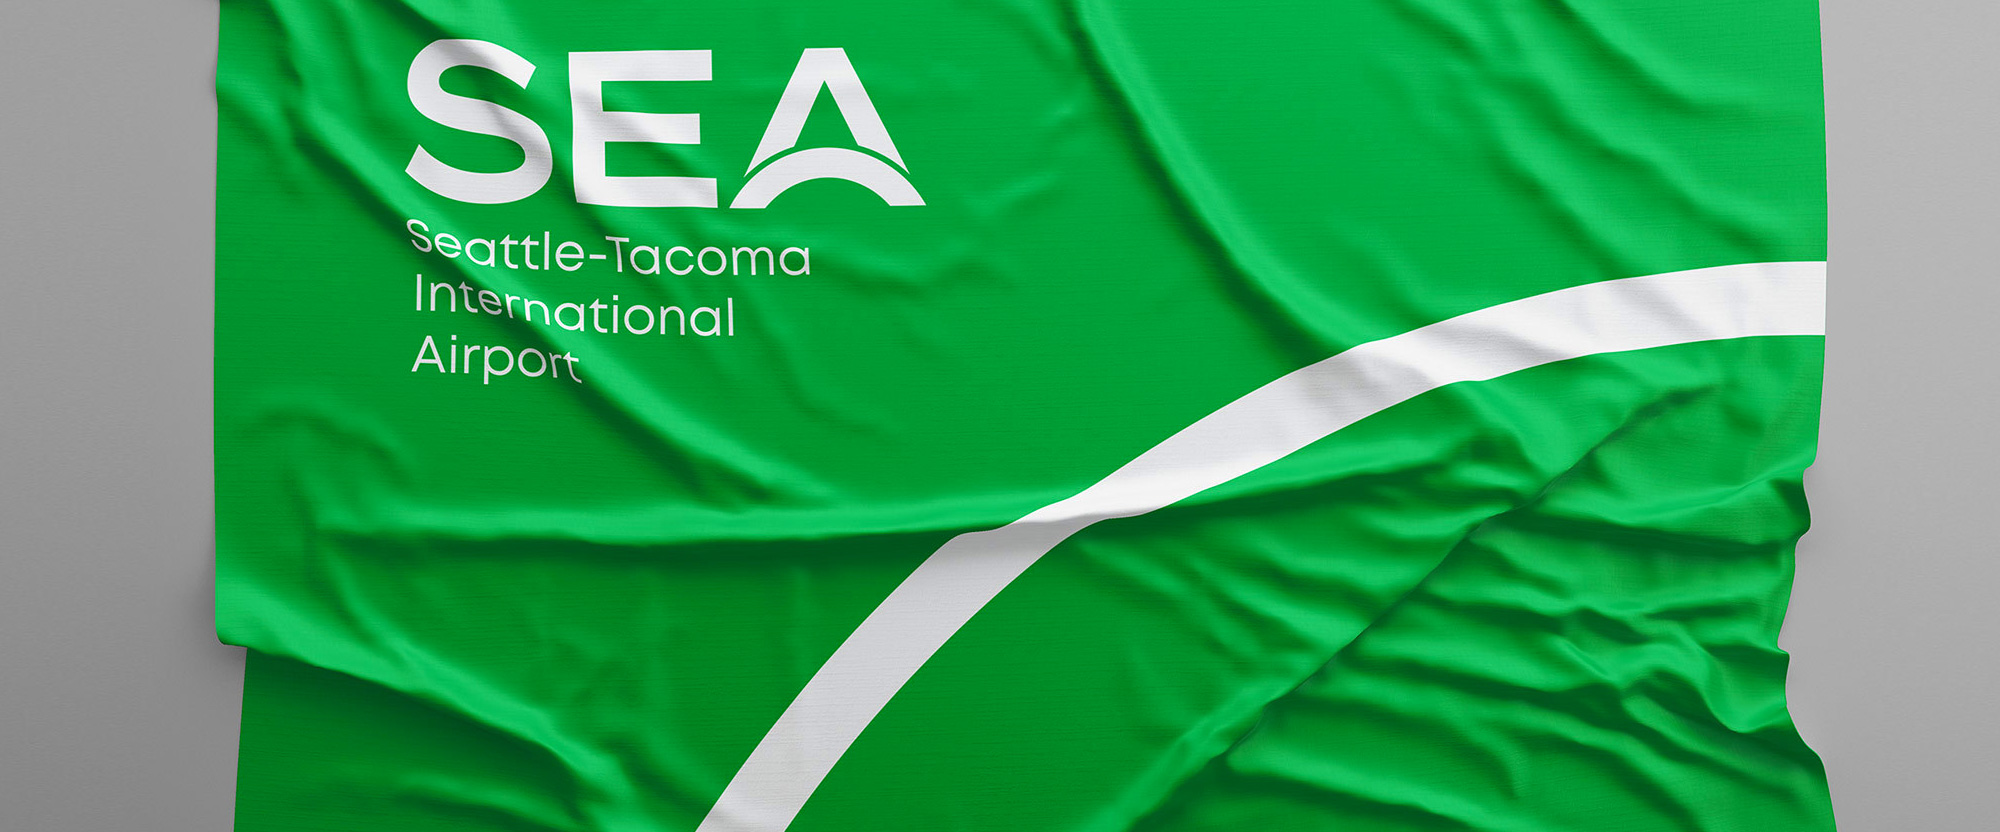 Follow-up: New Logo and Identity for Seattle-Tacoma International Airport by Turnstyle